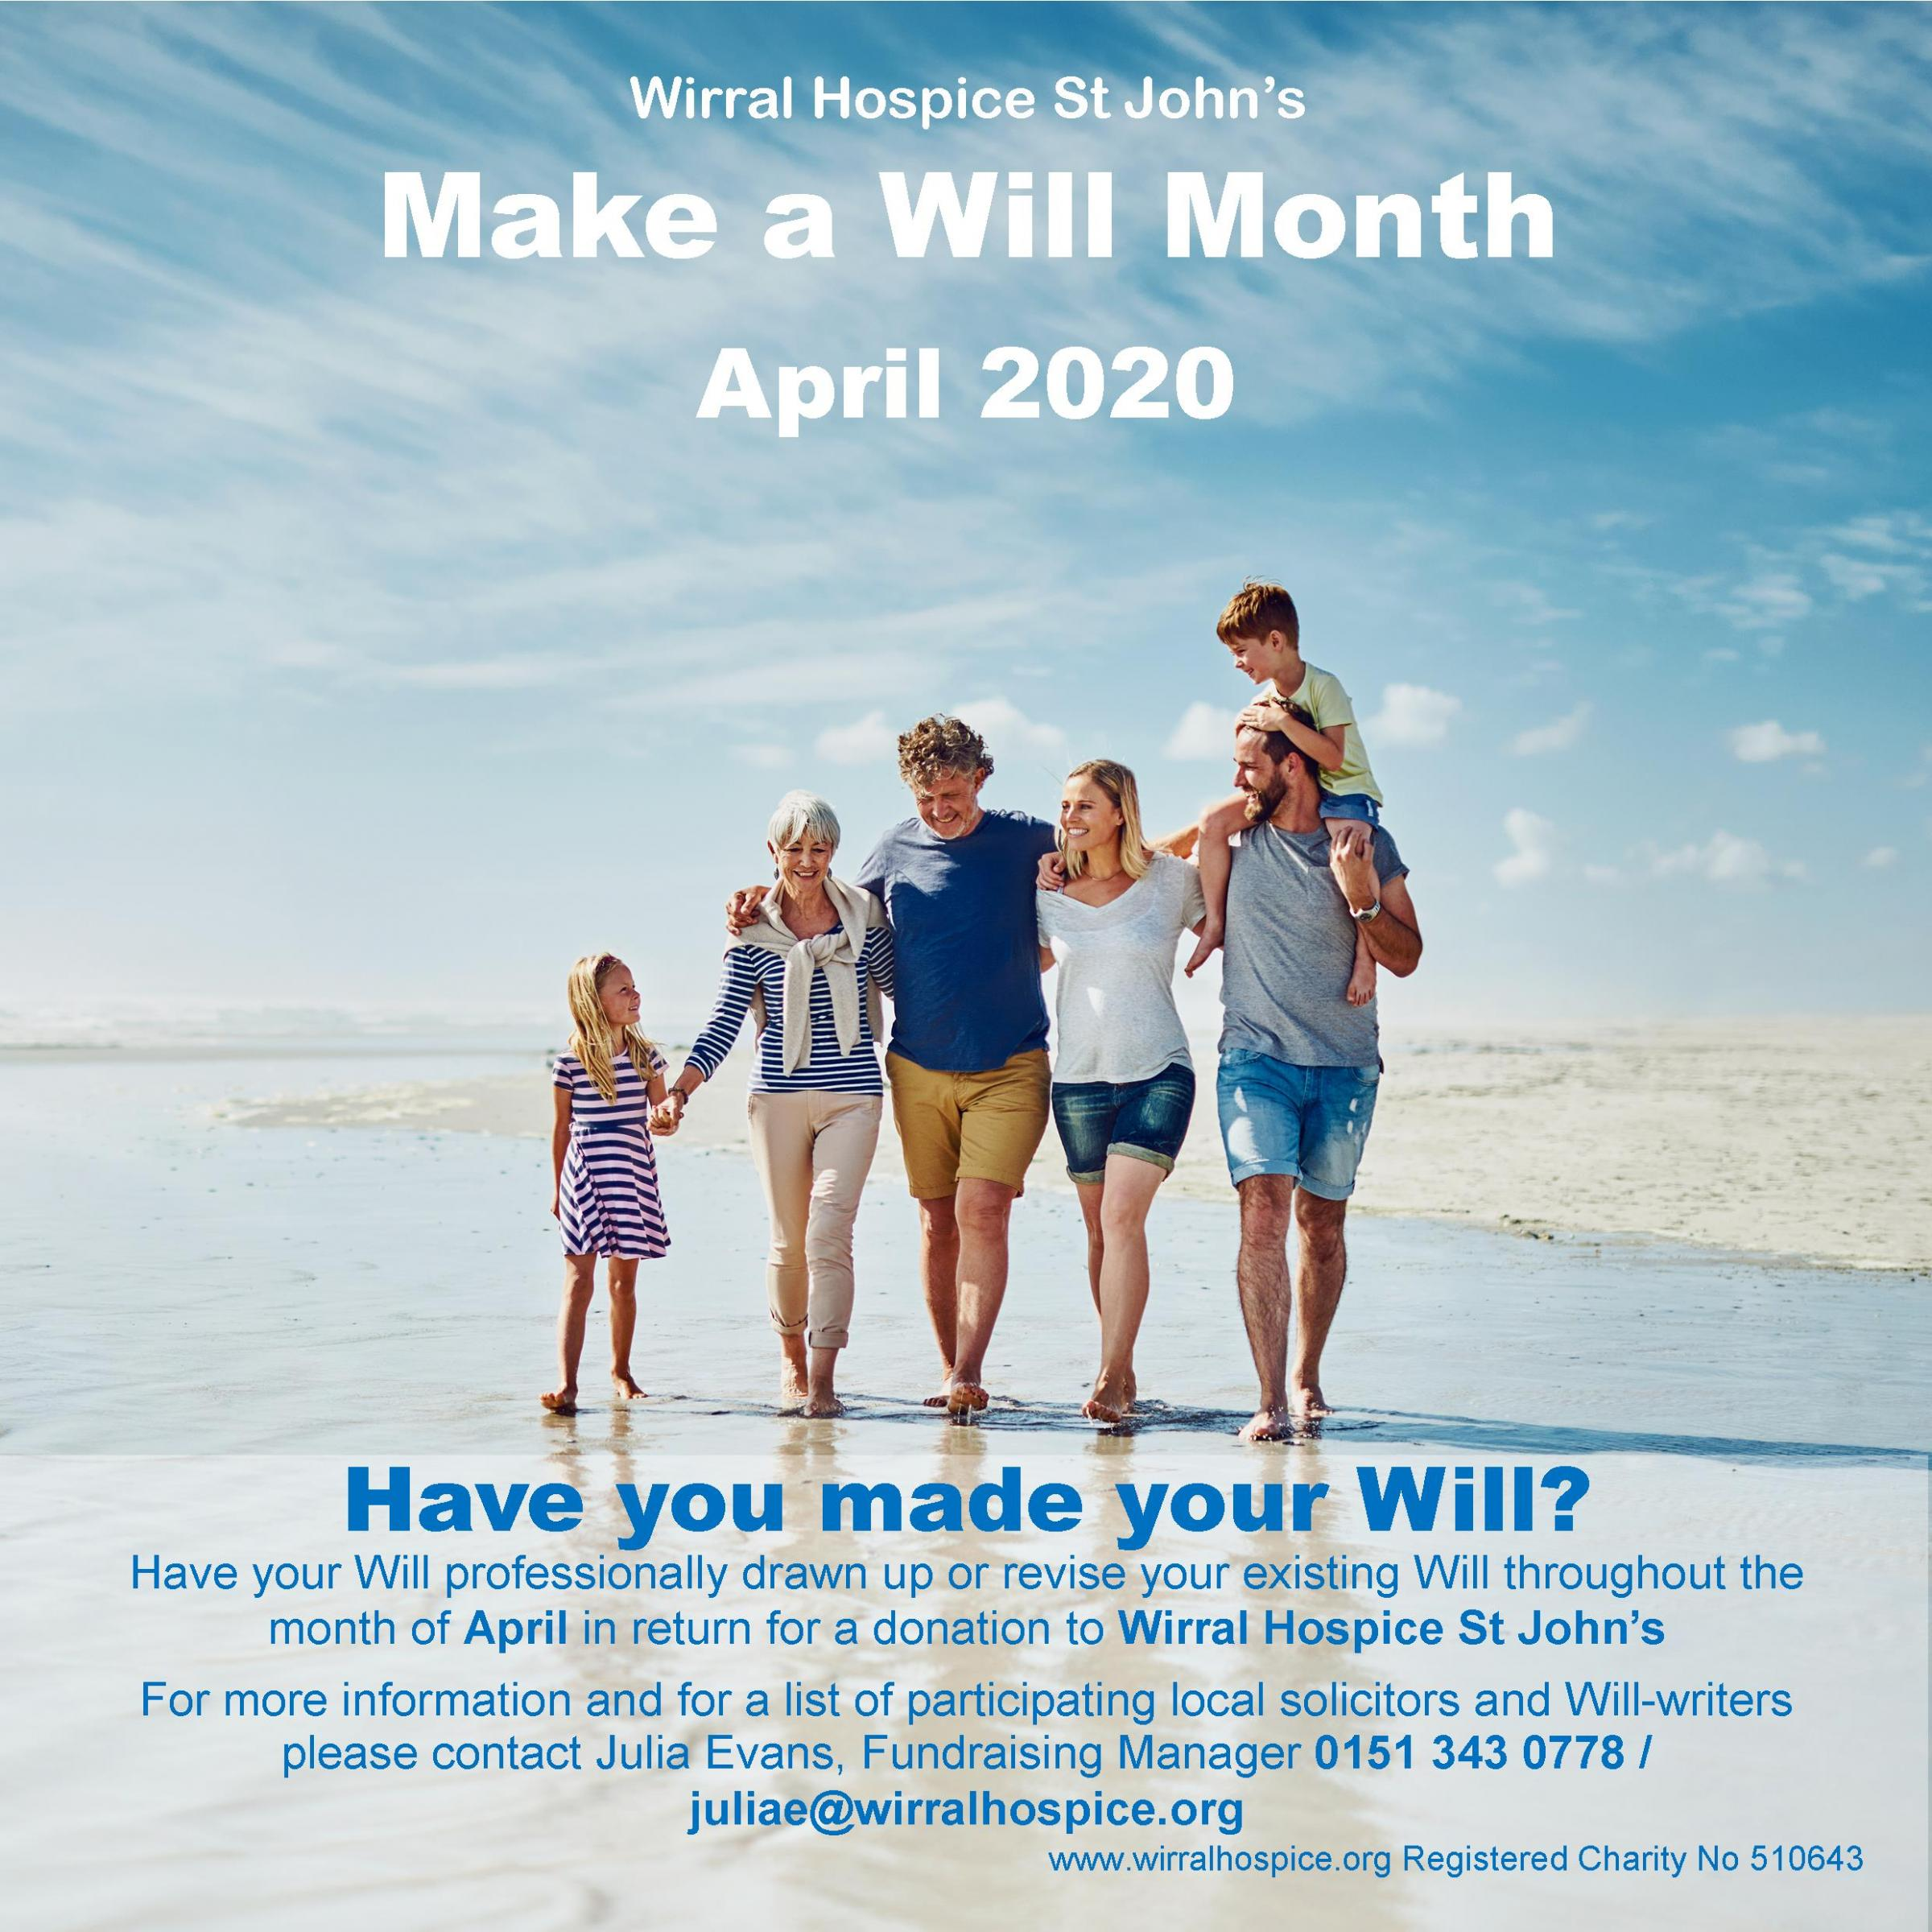 Wirral Hospice St John's Make a Will Month